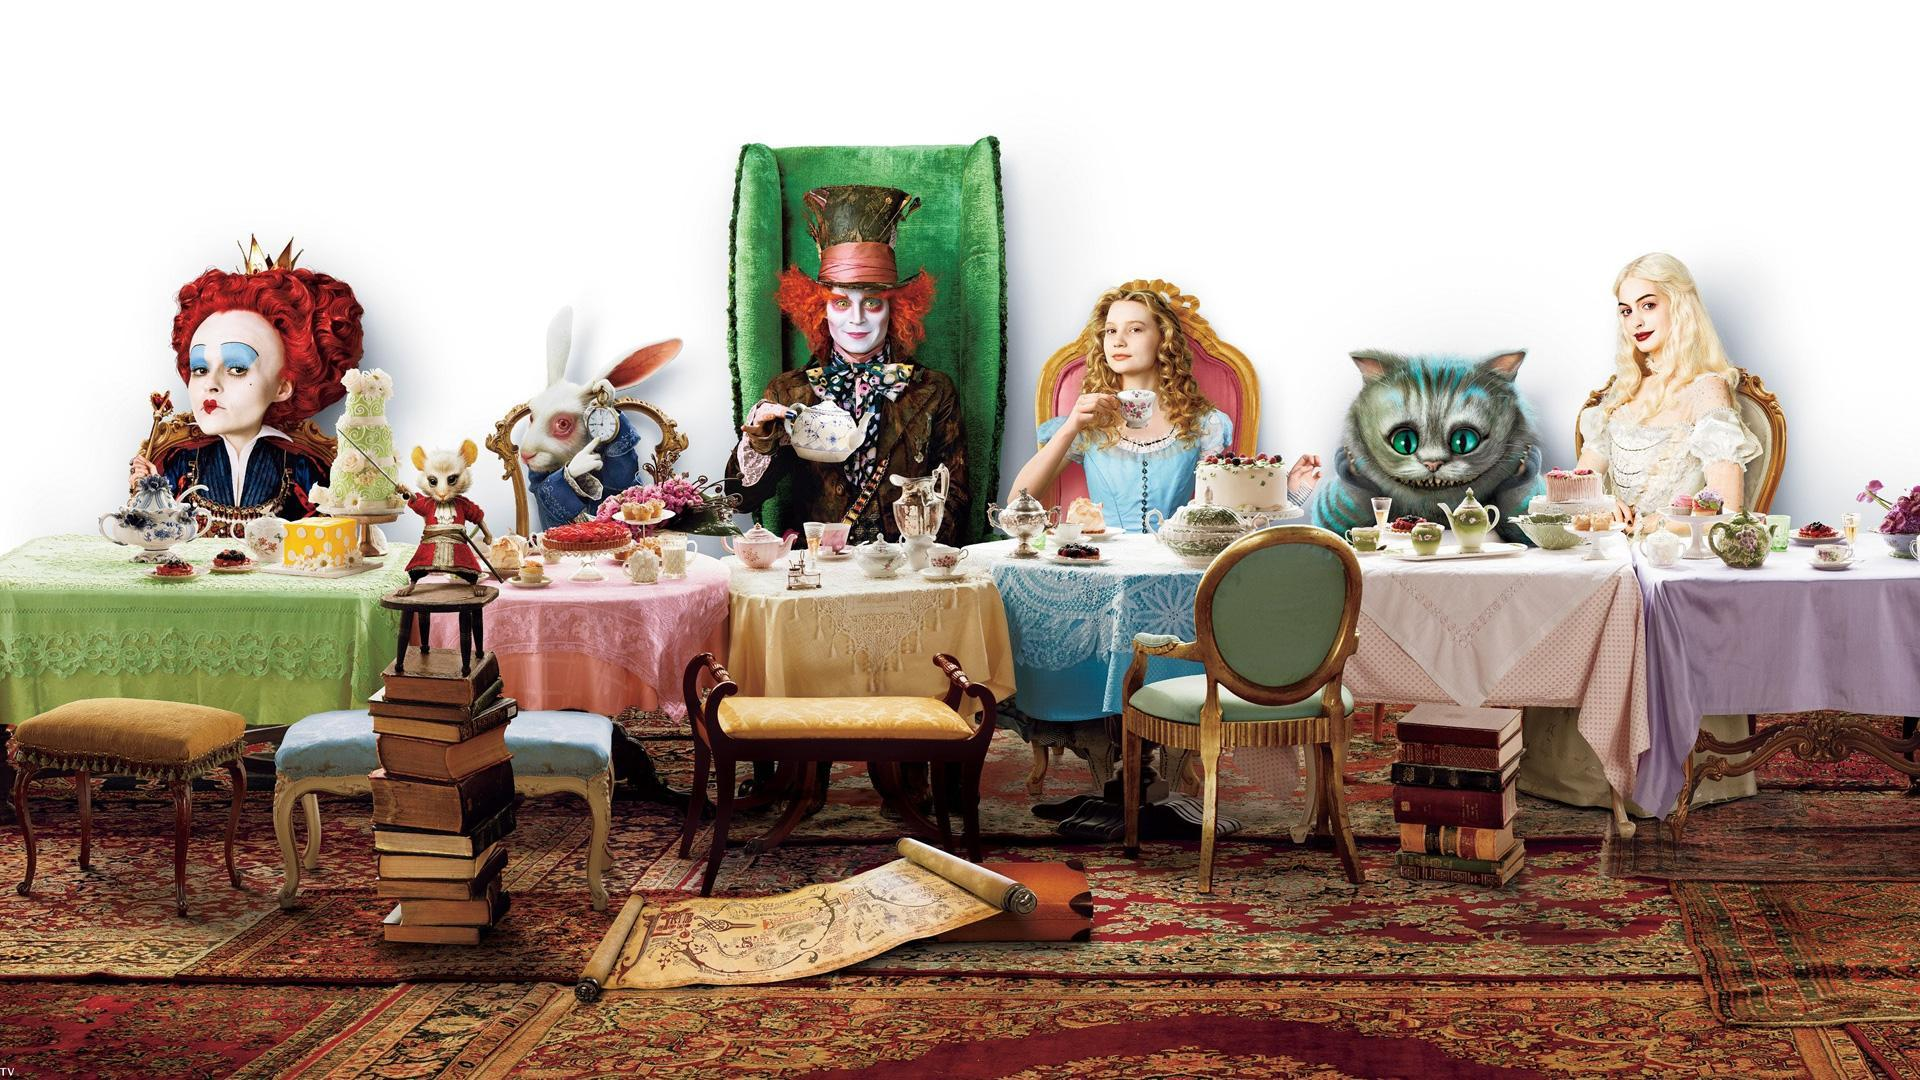 Who are you from Alice and wonderland?